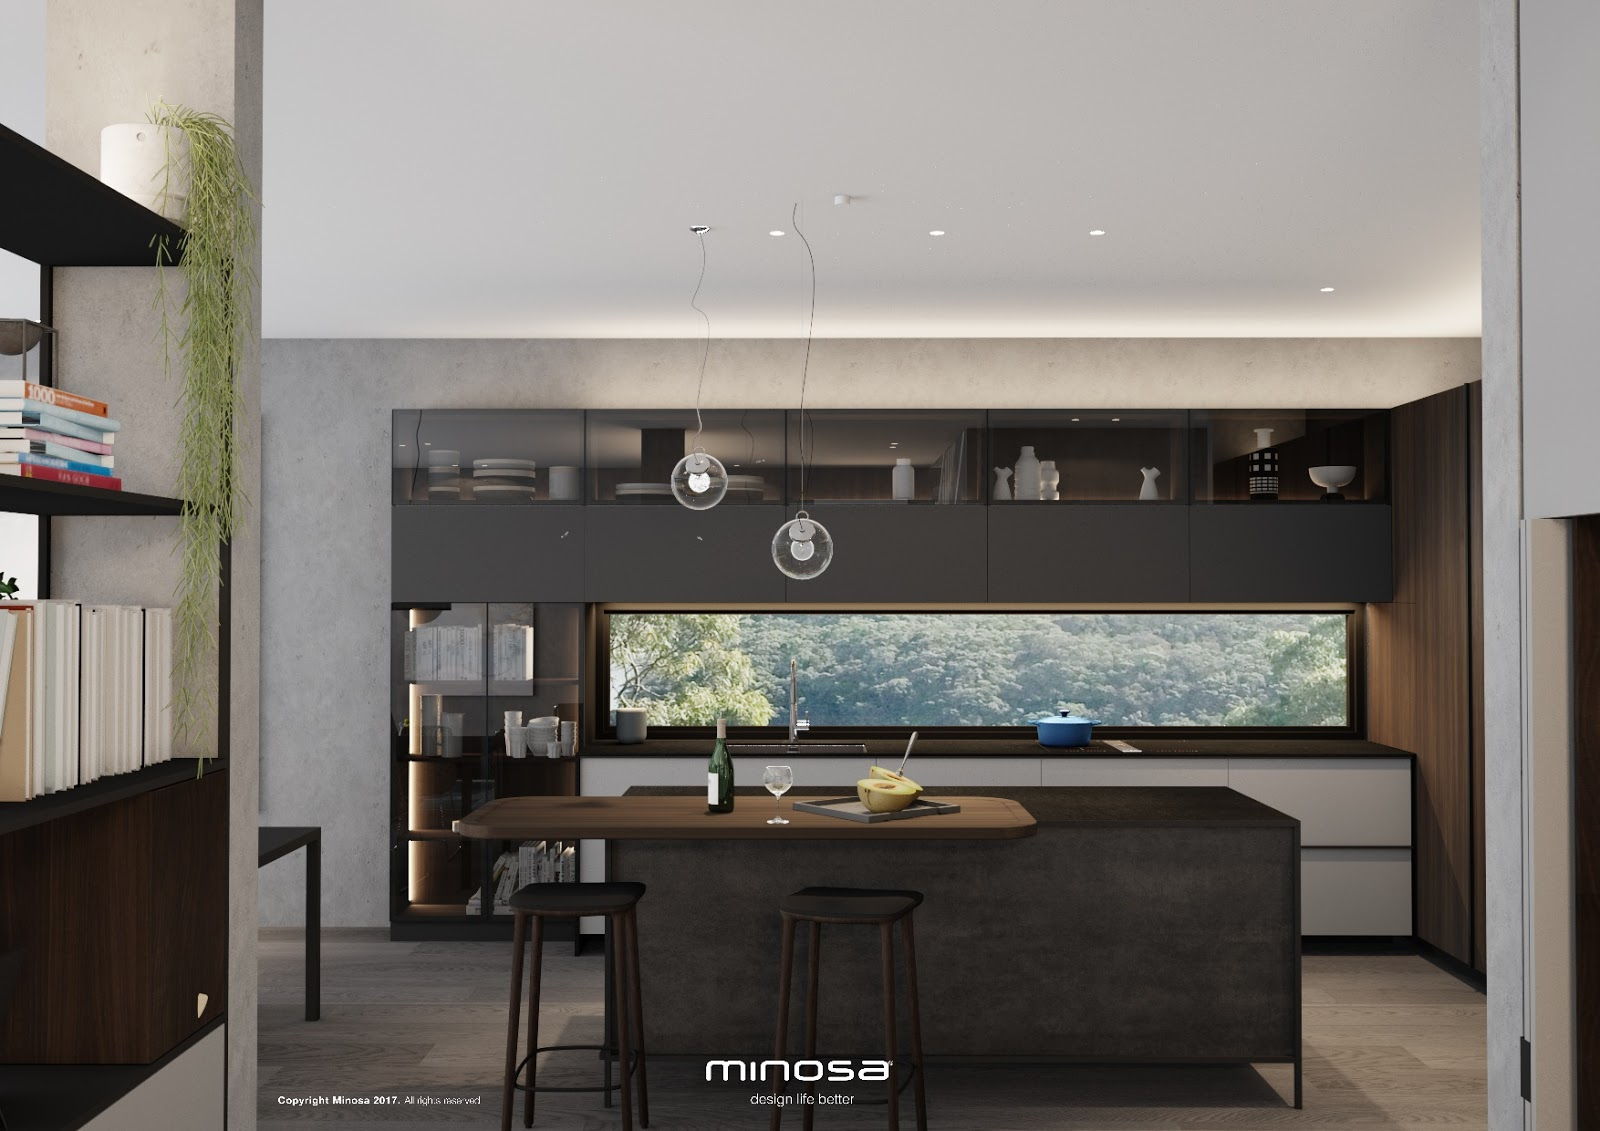 Minosa something a little different kitchen design for Different kitchen designs